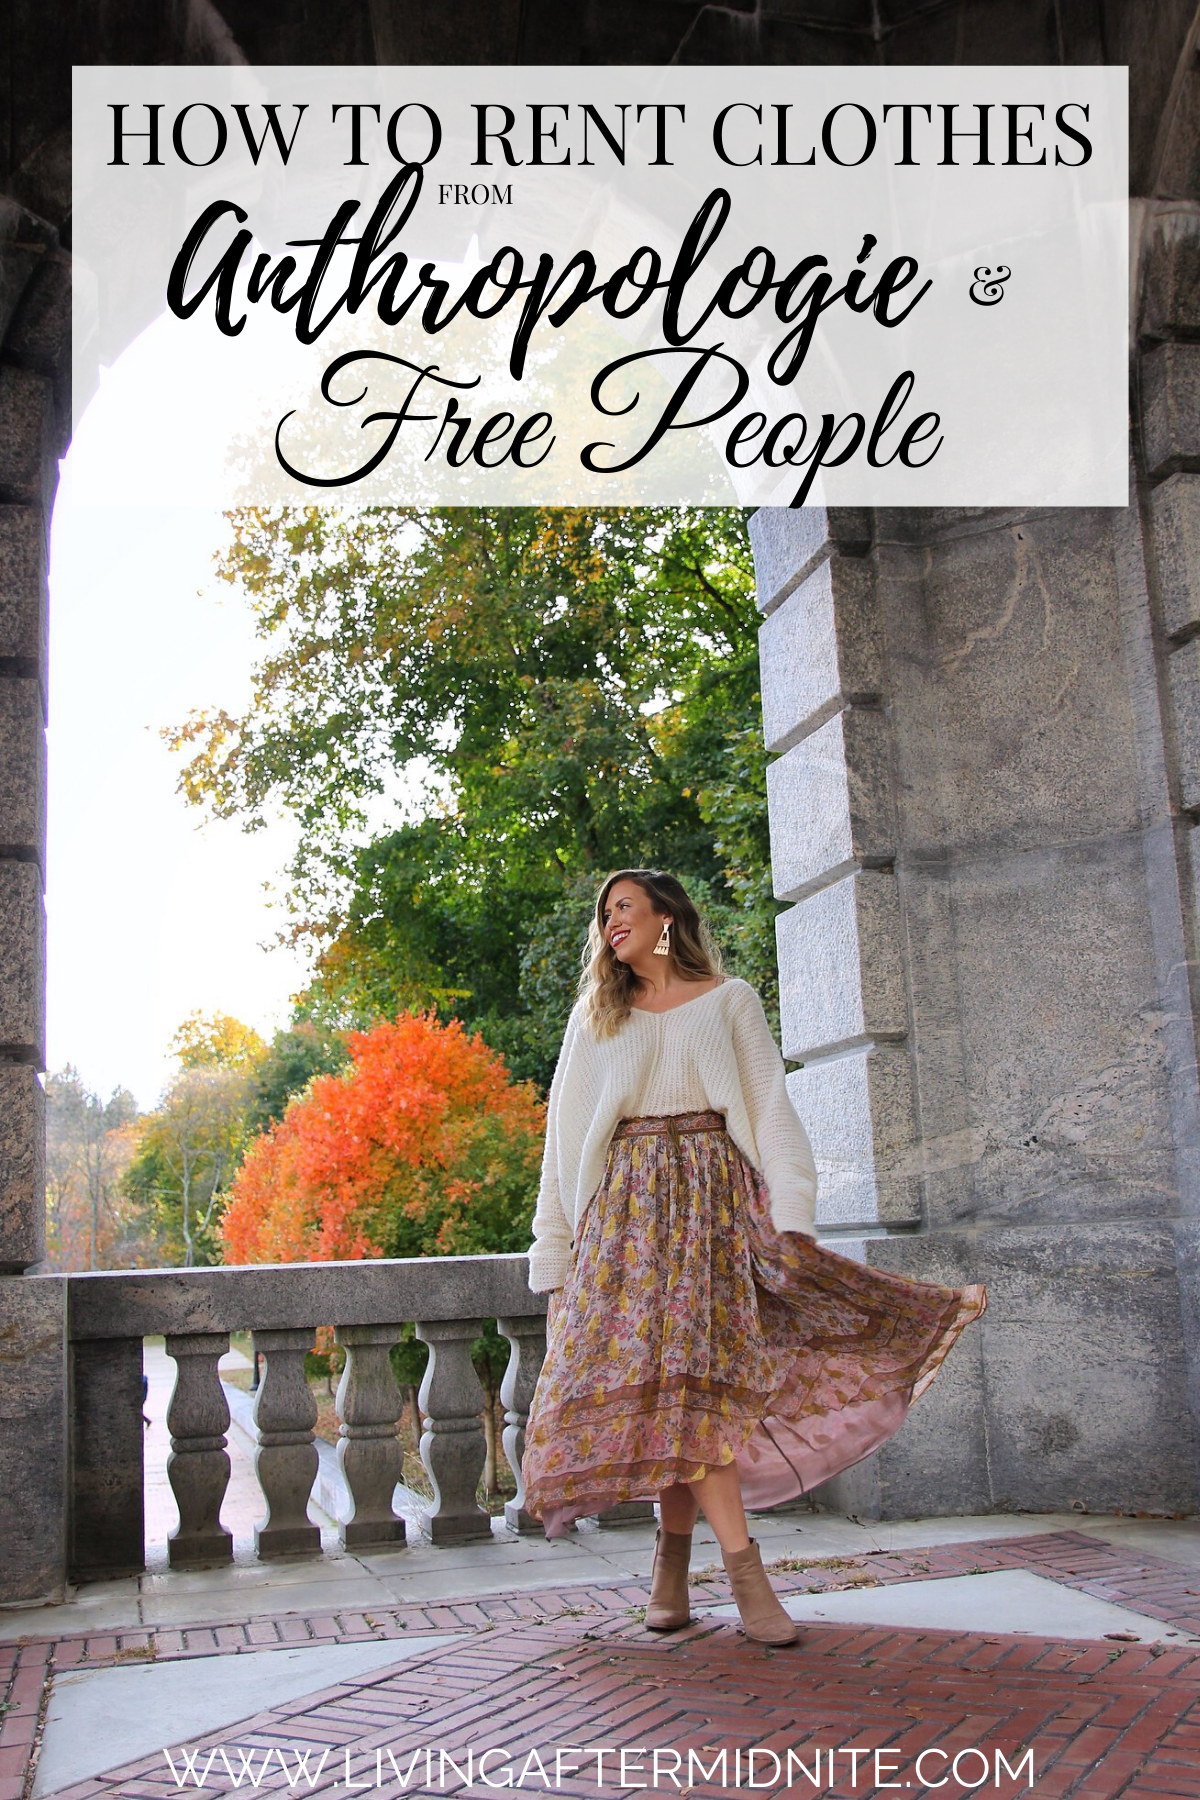 How to rent clothes from Anthropologie and Free People - nuuly